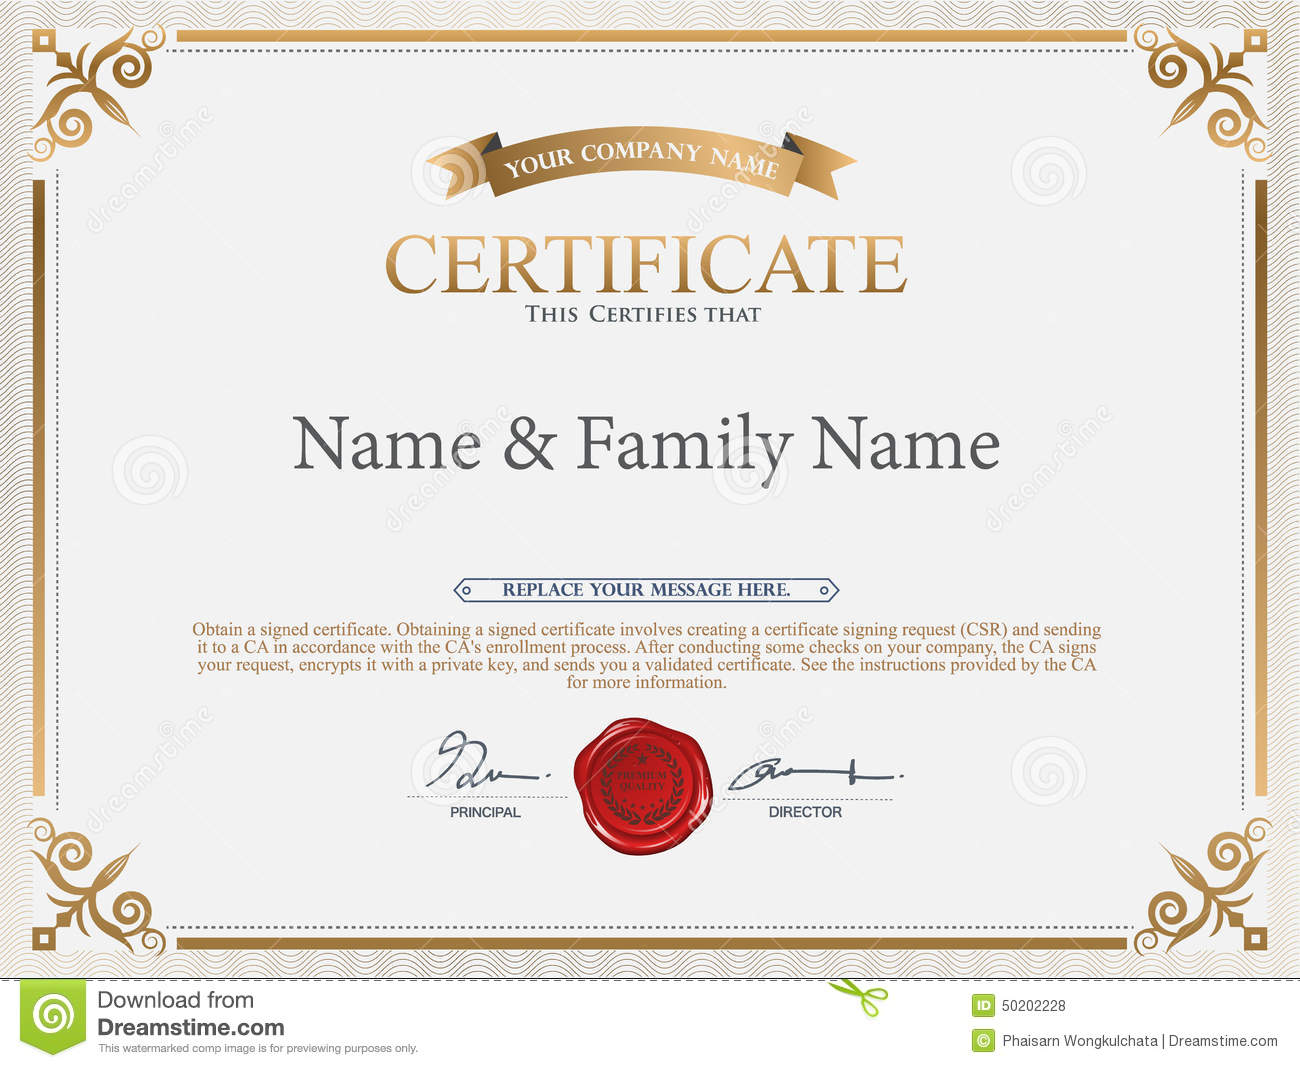 Vector Certificate Template. Graduation, Letterpress.  Certificate Designs Templates